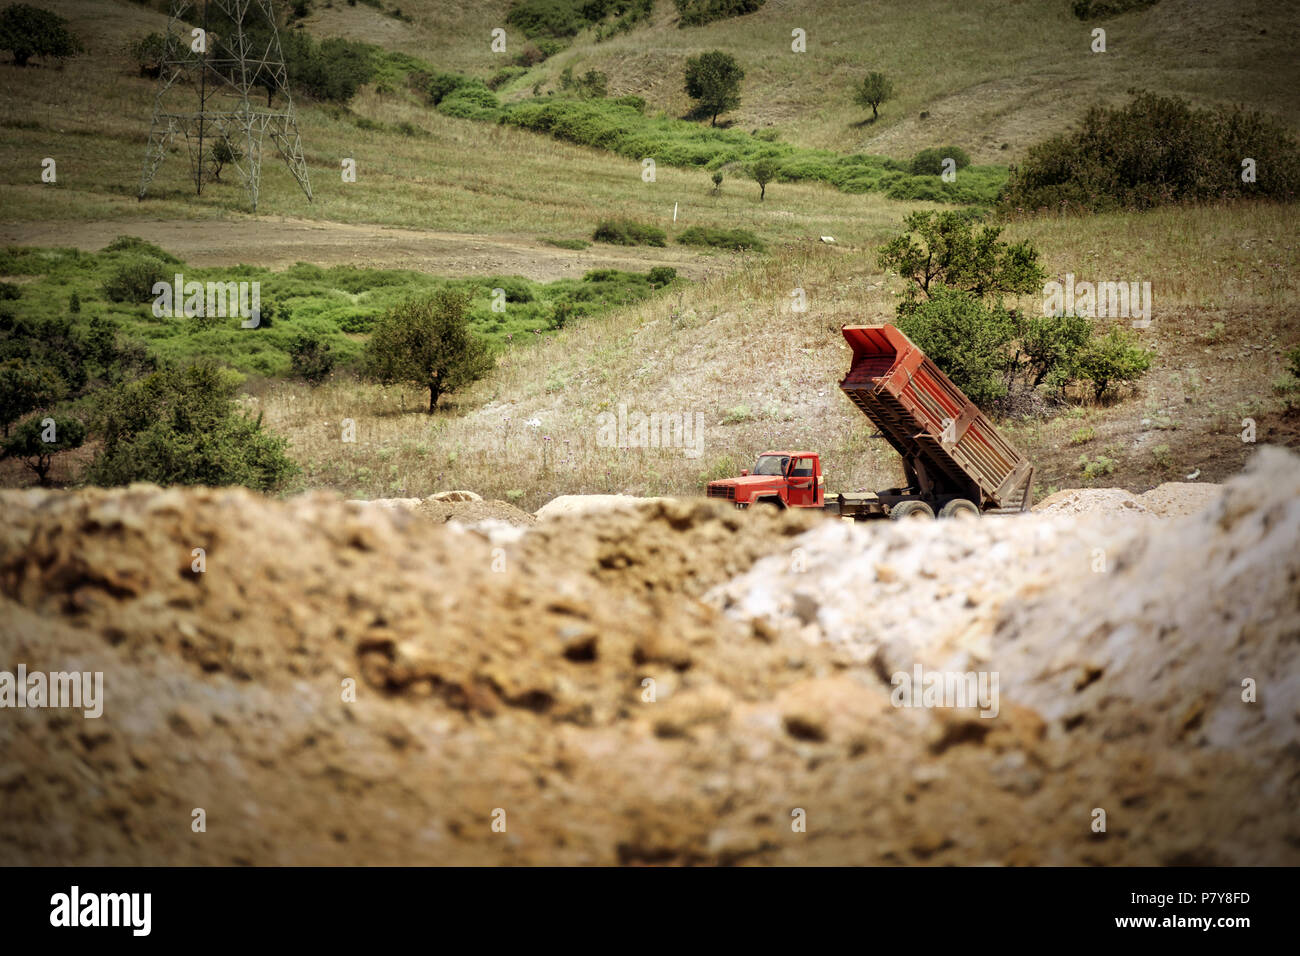 an image of working truck - Stock Image